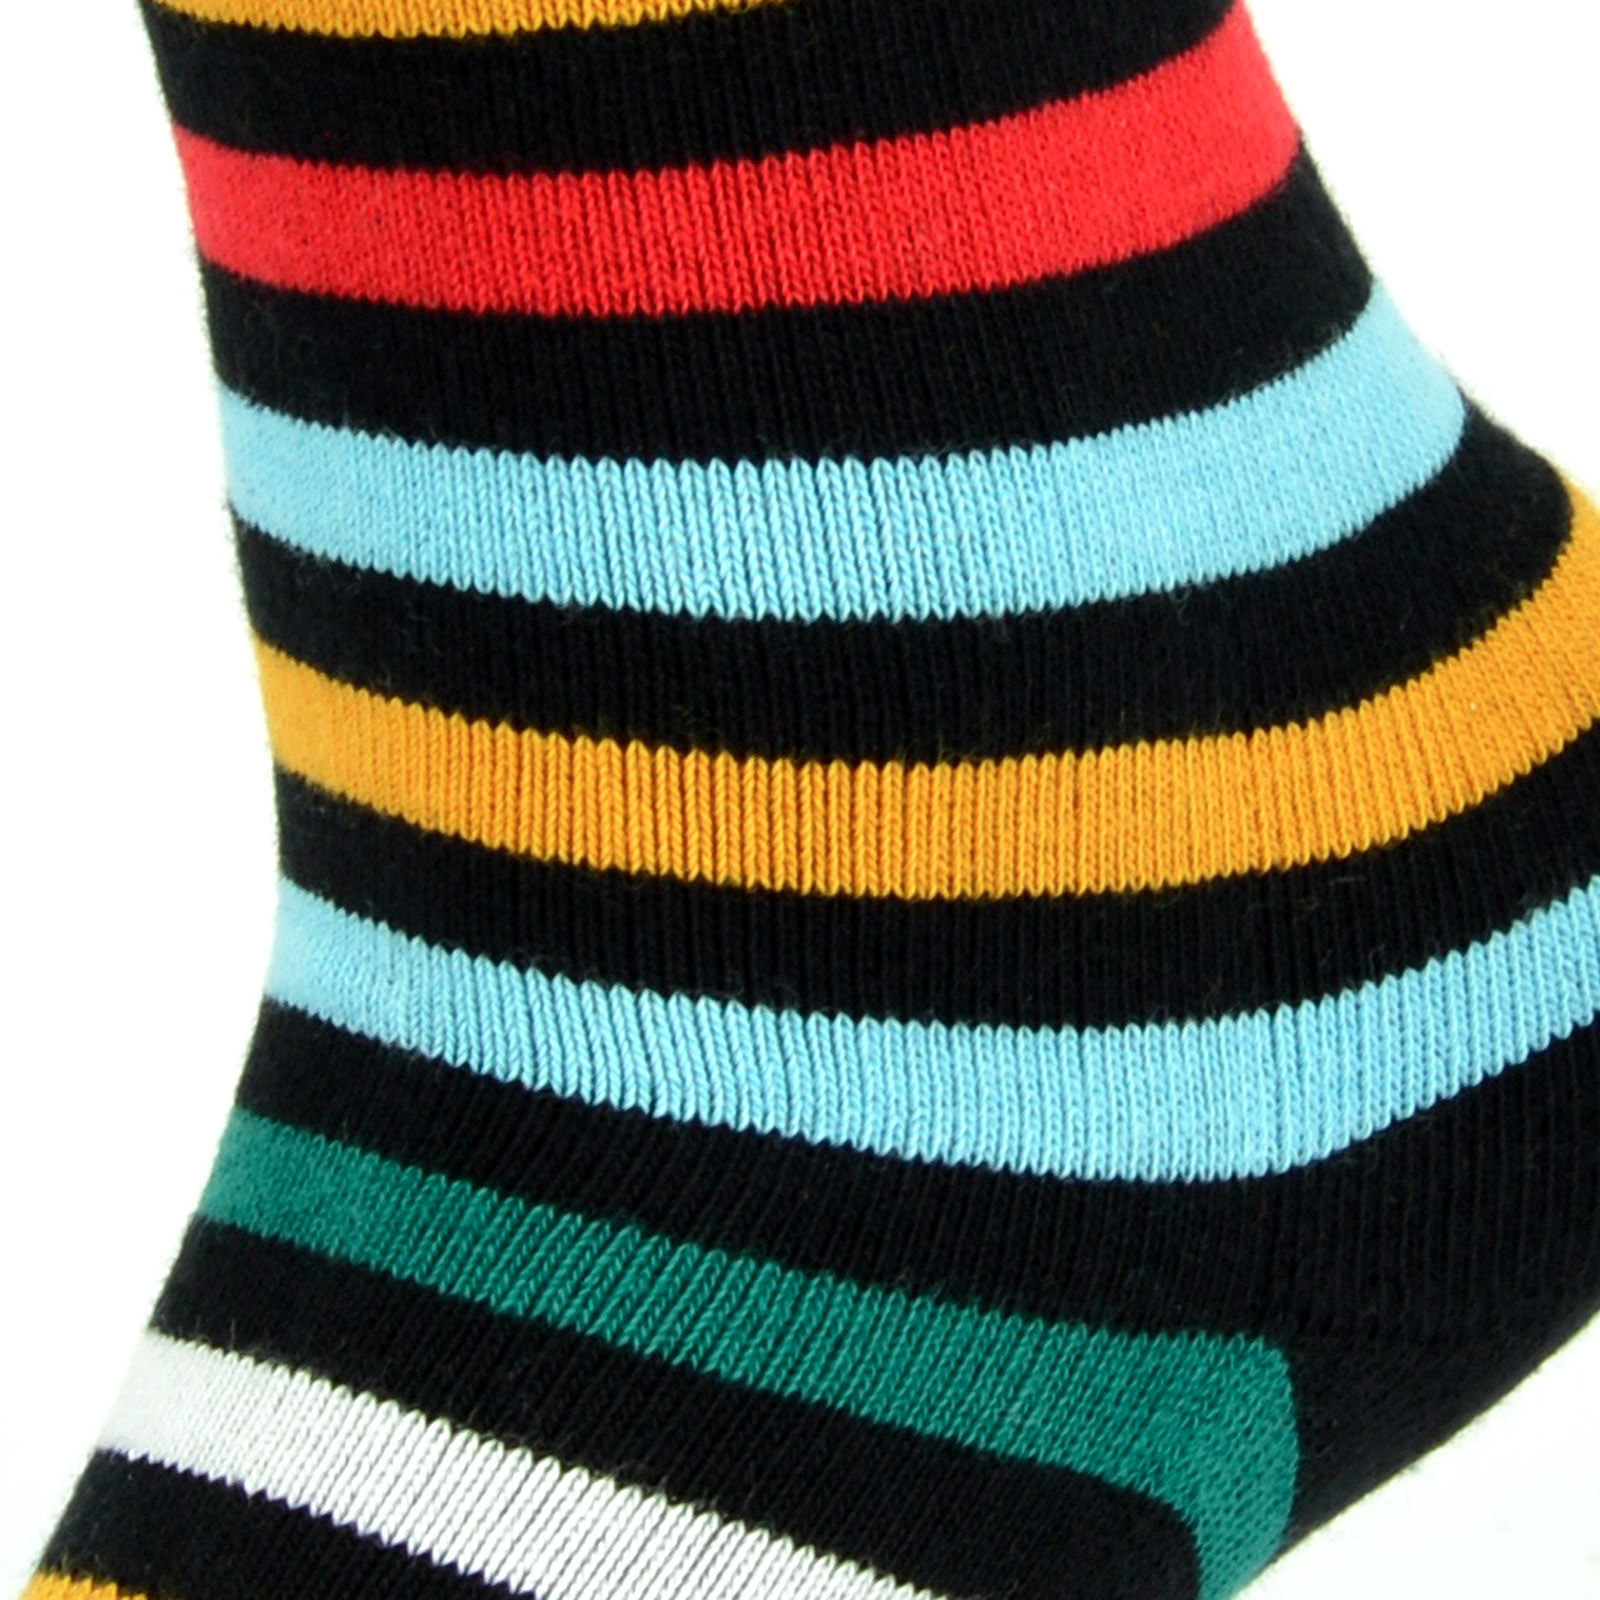 2018 New Cheap Online Quality For Sale Free Shipping 3-Pack Black Socks - Size 40-45 Trendhim Great Deals Sale Online Clearance Newest mlVbui